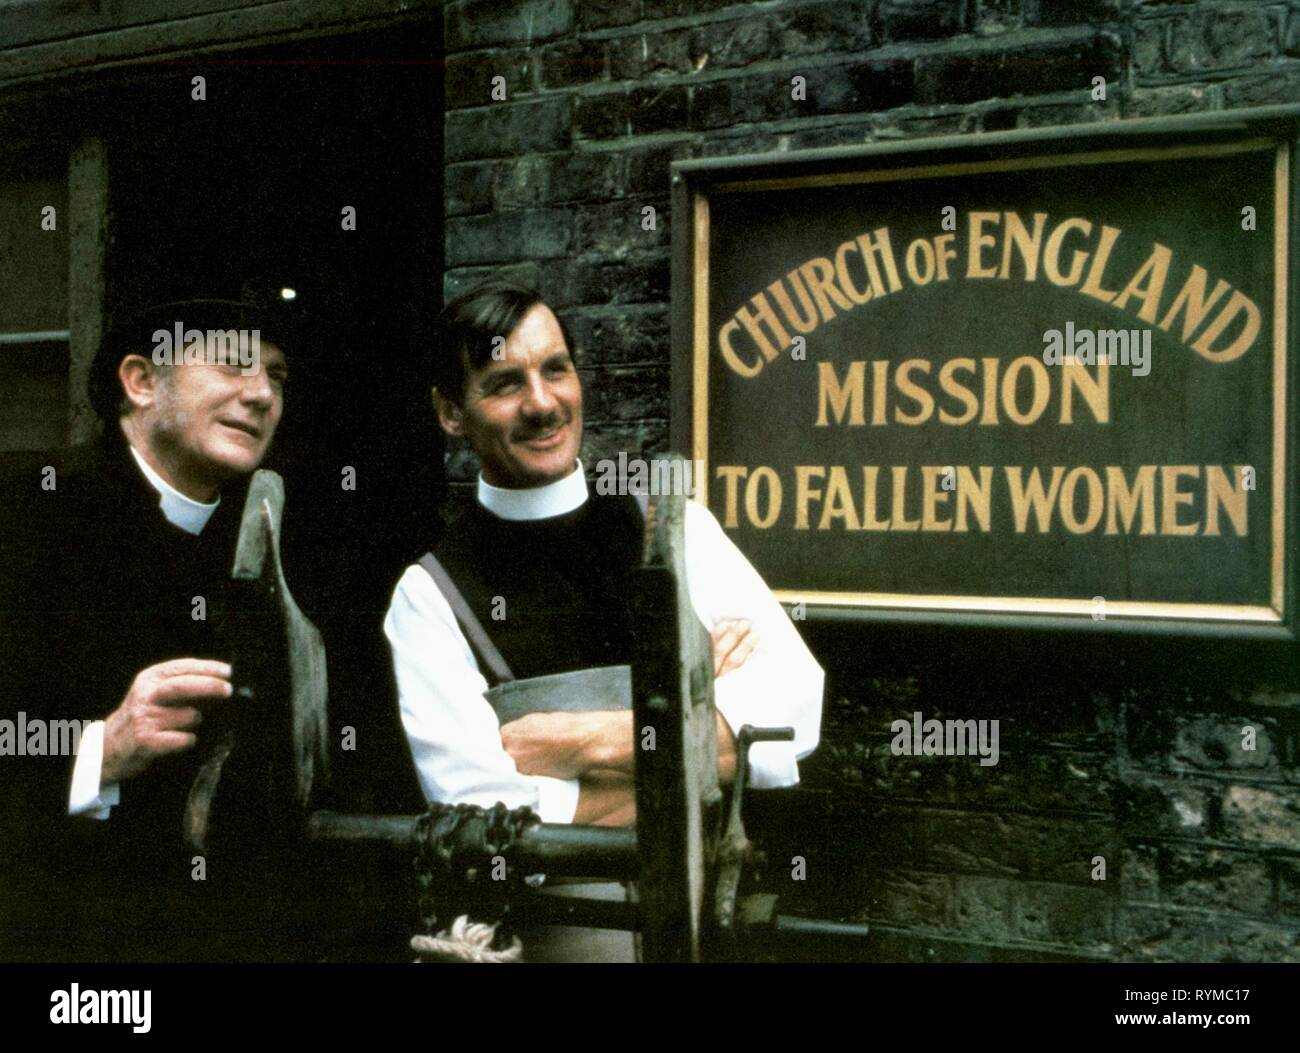 ELLIOTT,PALIN, THE MISSIONARY, 1982 Stock Photo